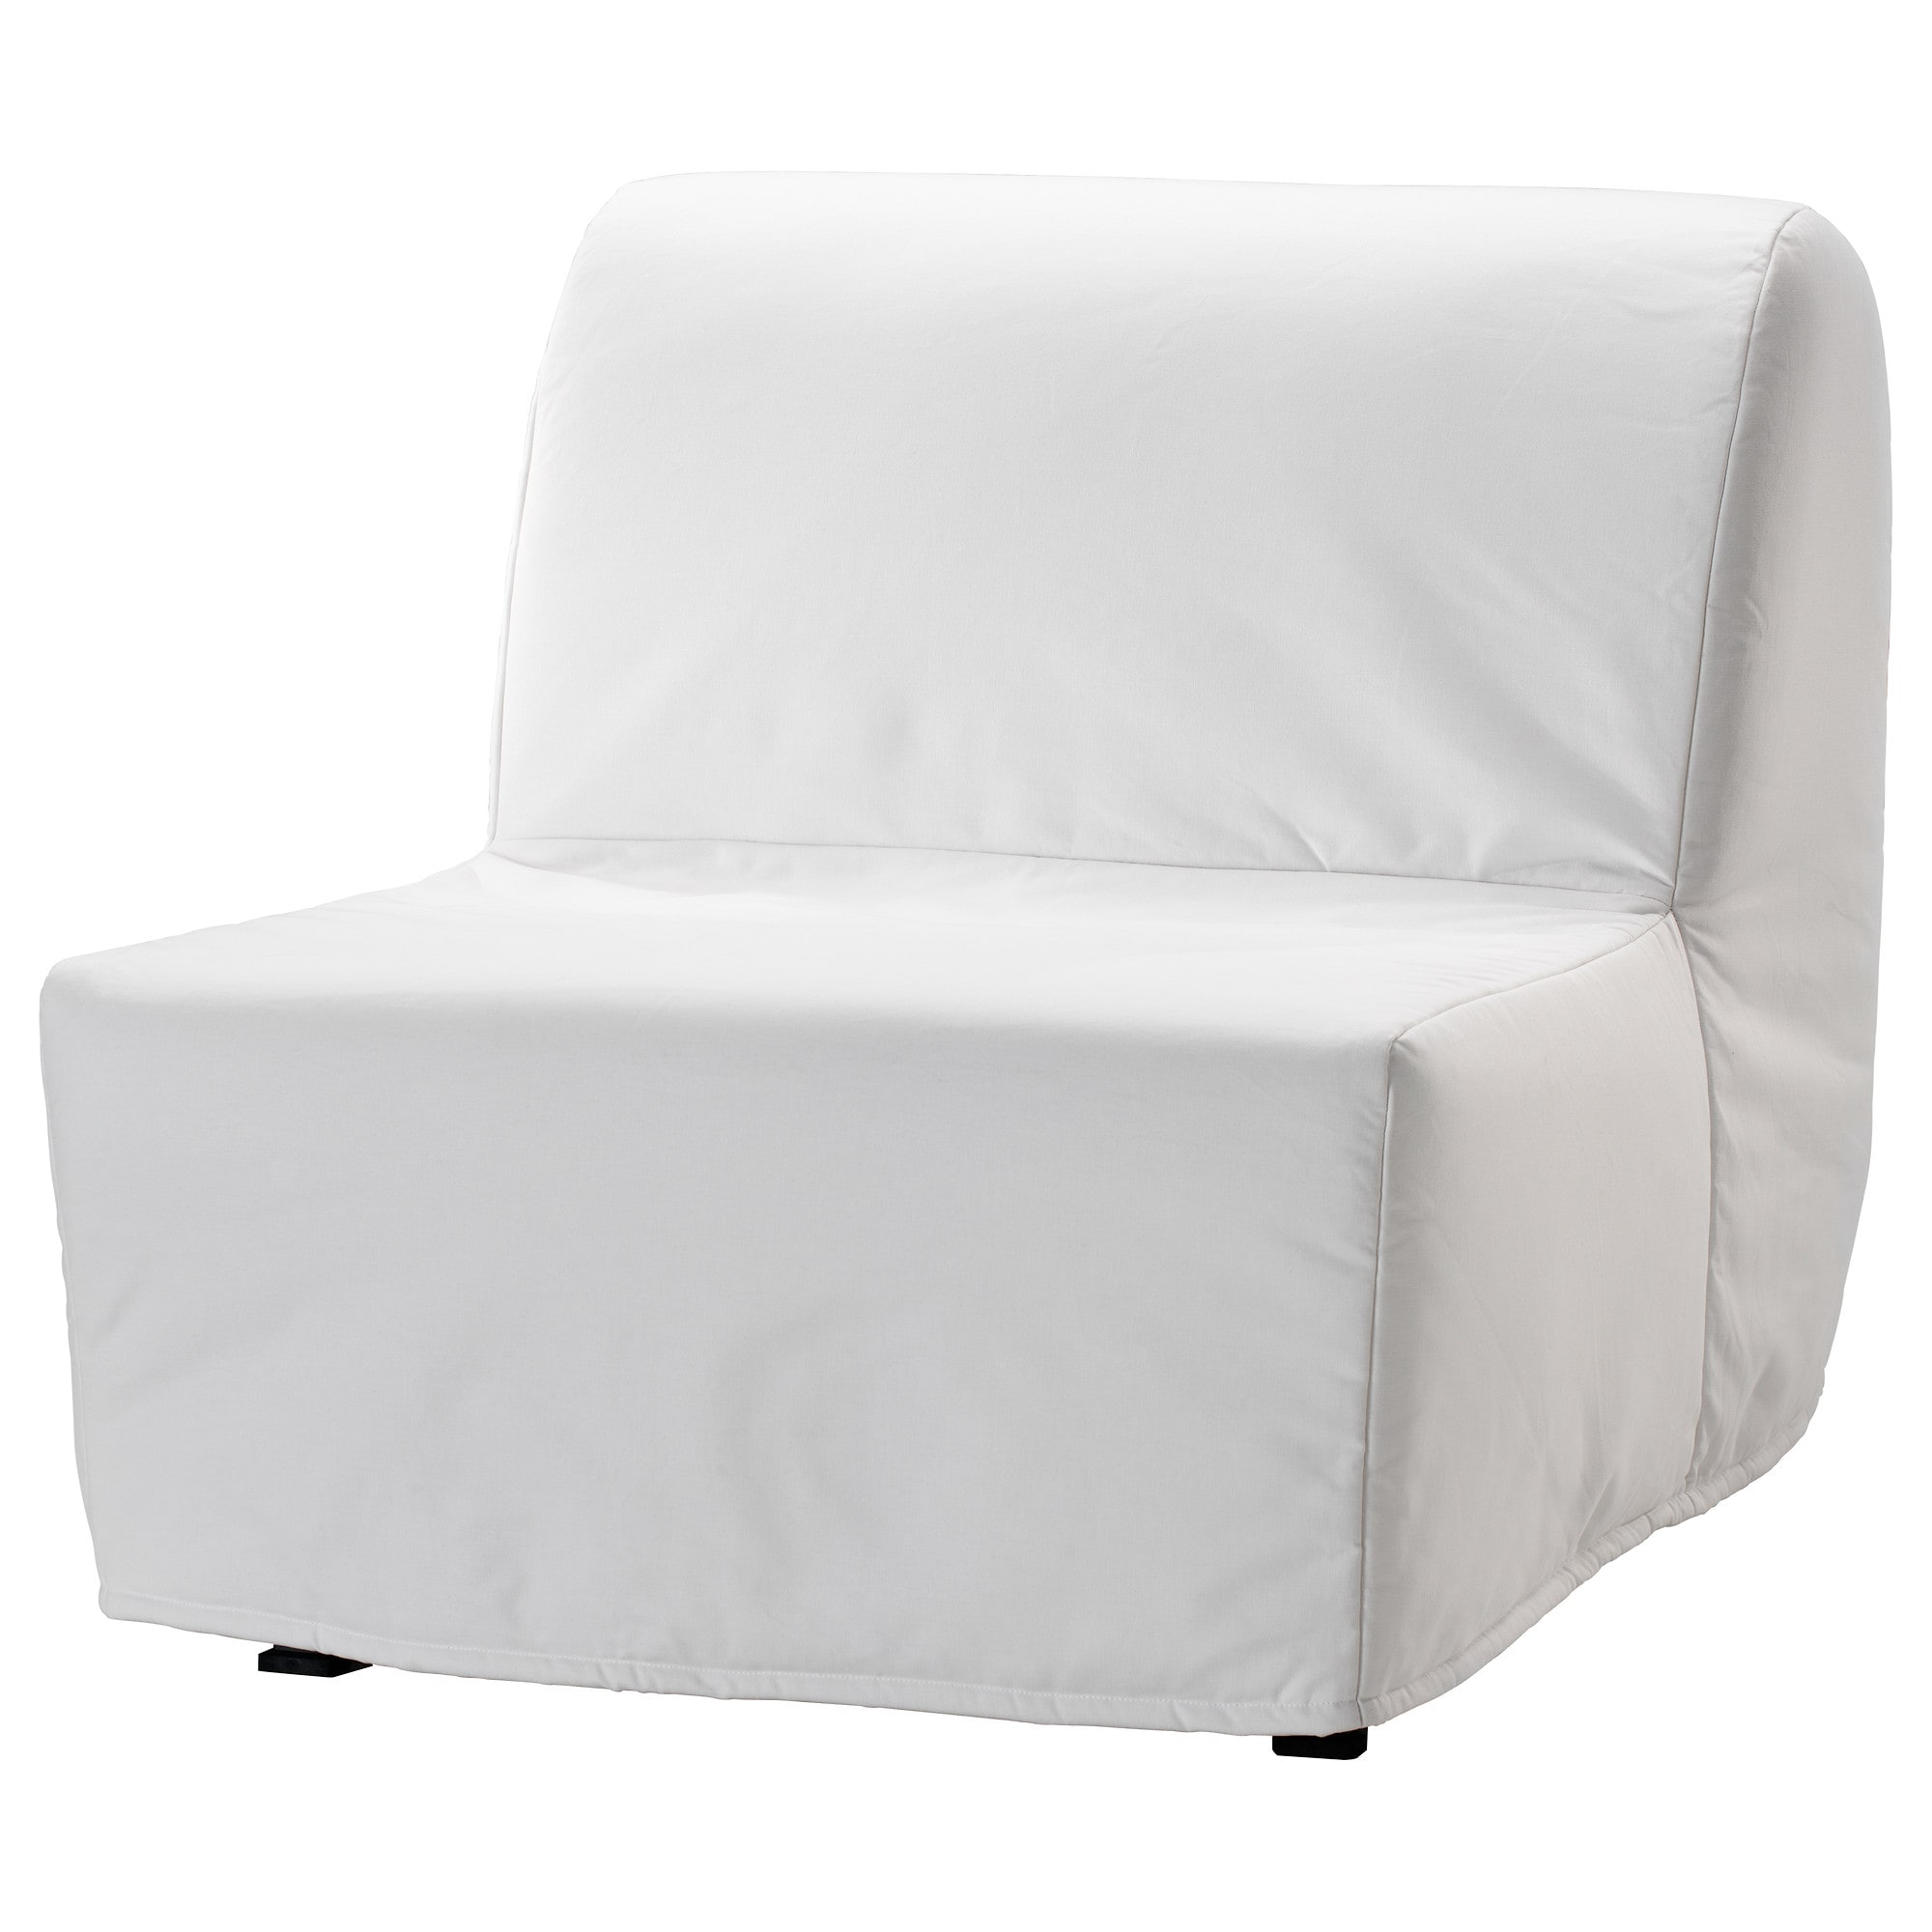 Lycksele Lövås Chair Bed Ransta White – Ikea Inside Ikea Sofa Chairs (View 12 of 25)